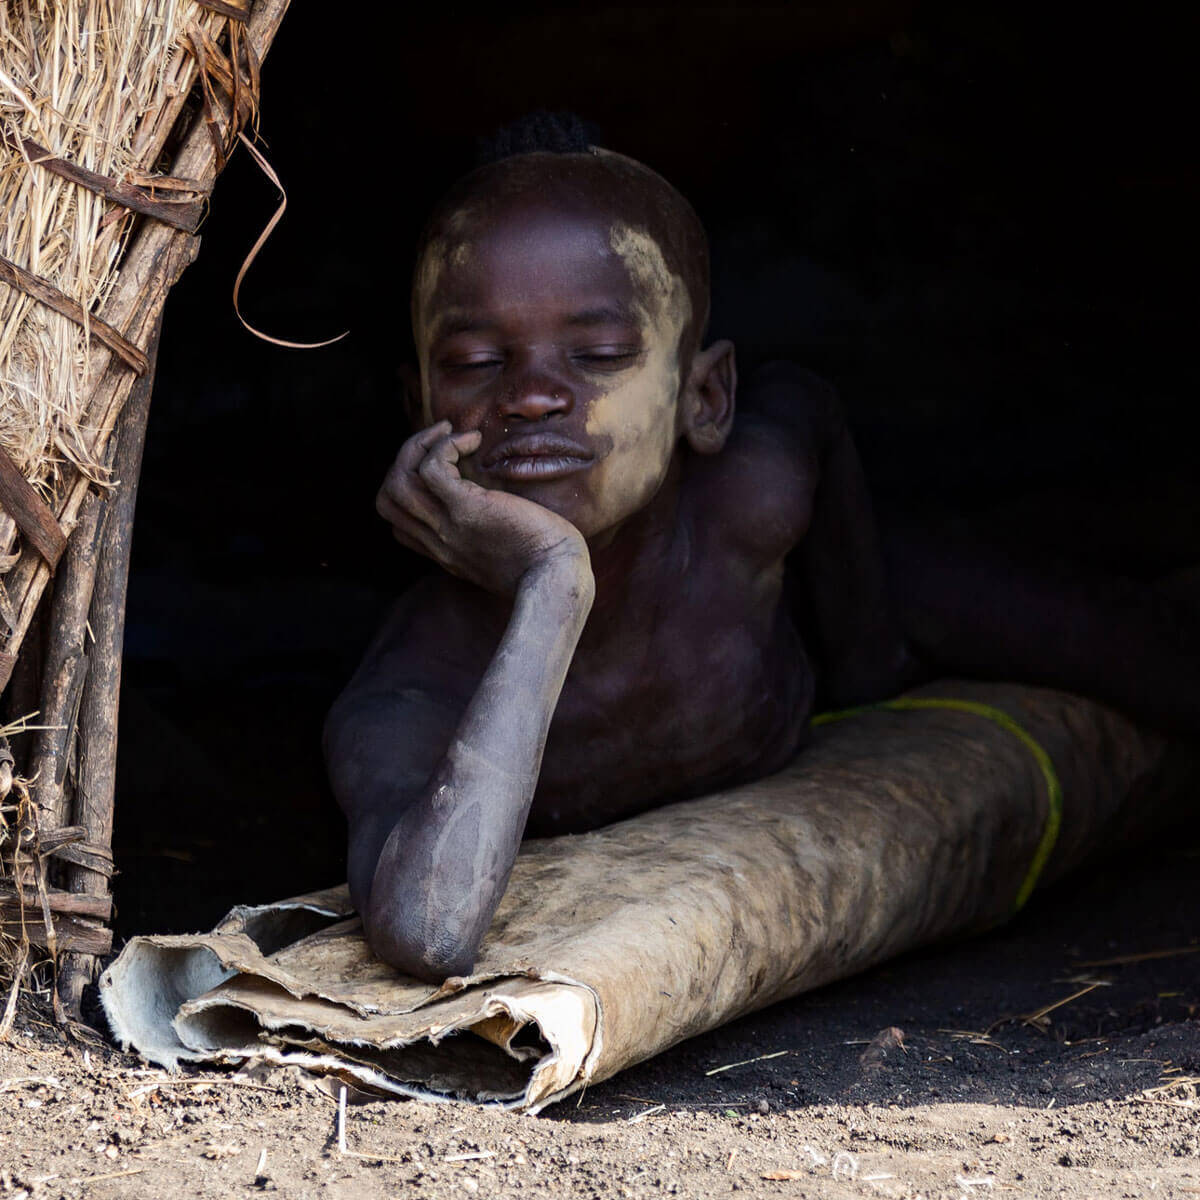 ETHIOPIA_TRIBES_MURSI_SURMA_OMO_VALLEY_BOY_Hut_Africa_country_traveling_trip_adventuresinethiopia